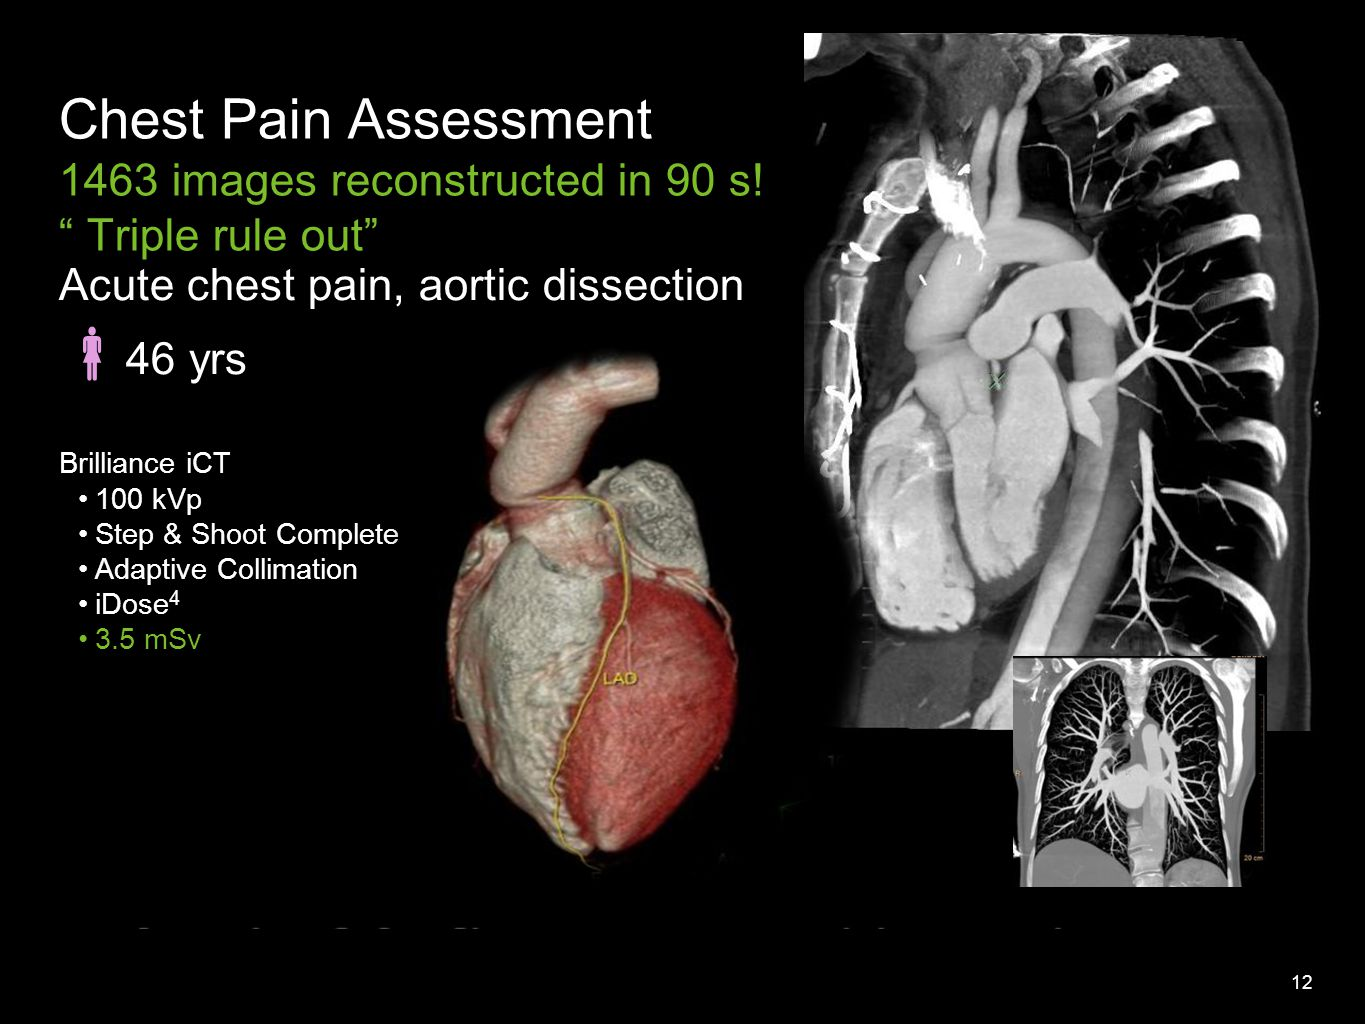 12 Acute chest pain, aortic dissection  46 yrs Brilliance iCT 100 kVp Step & Shoot Complete Adaptive Collimation iDose 4 3.5 mSv Chest Pain Assessment 1463 images reconstructed in 90 s.